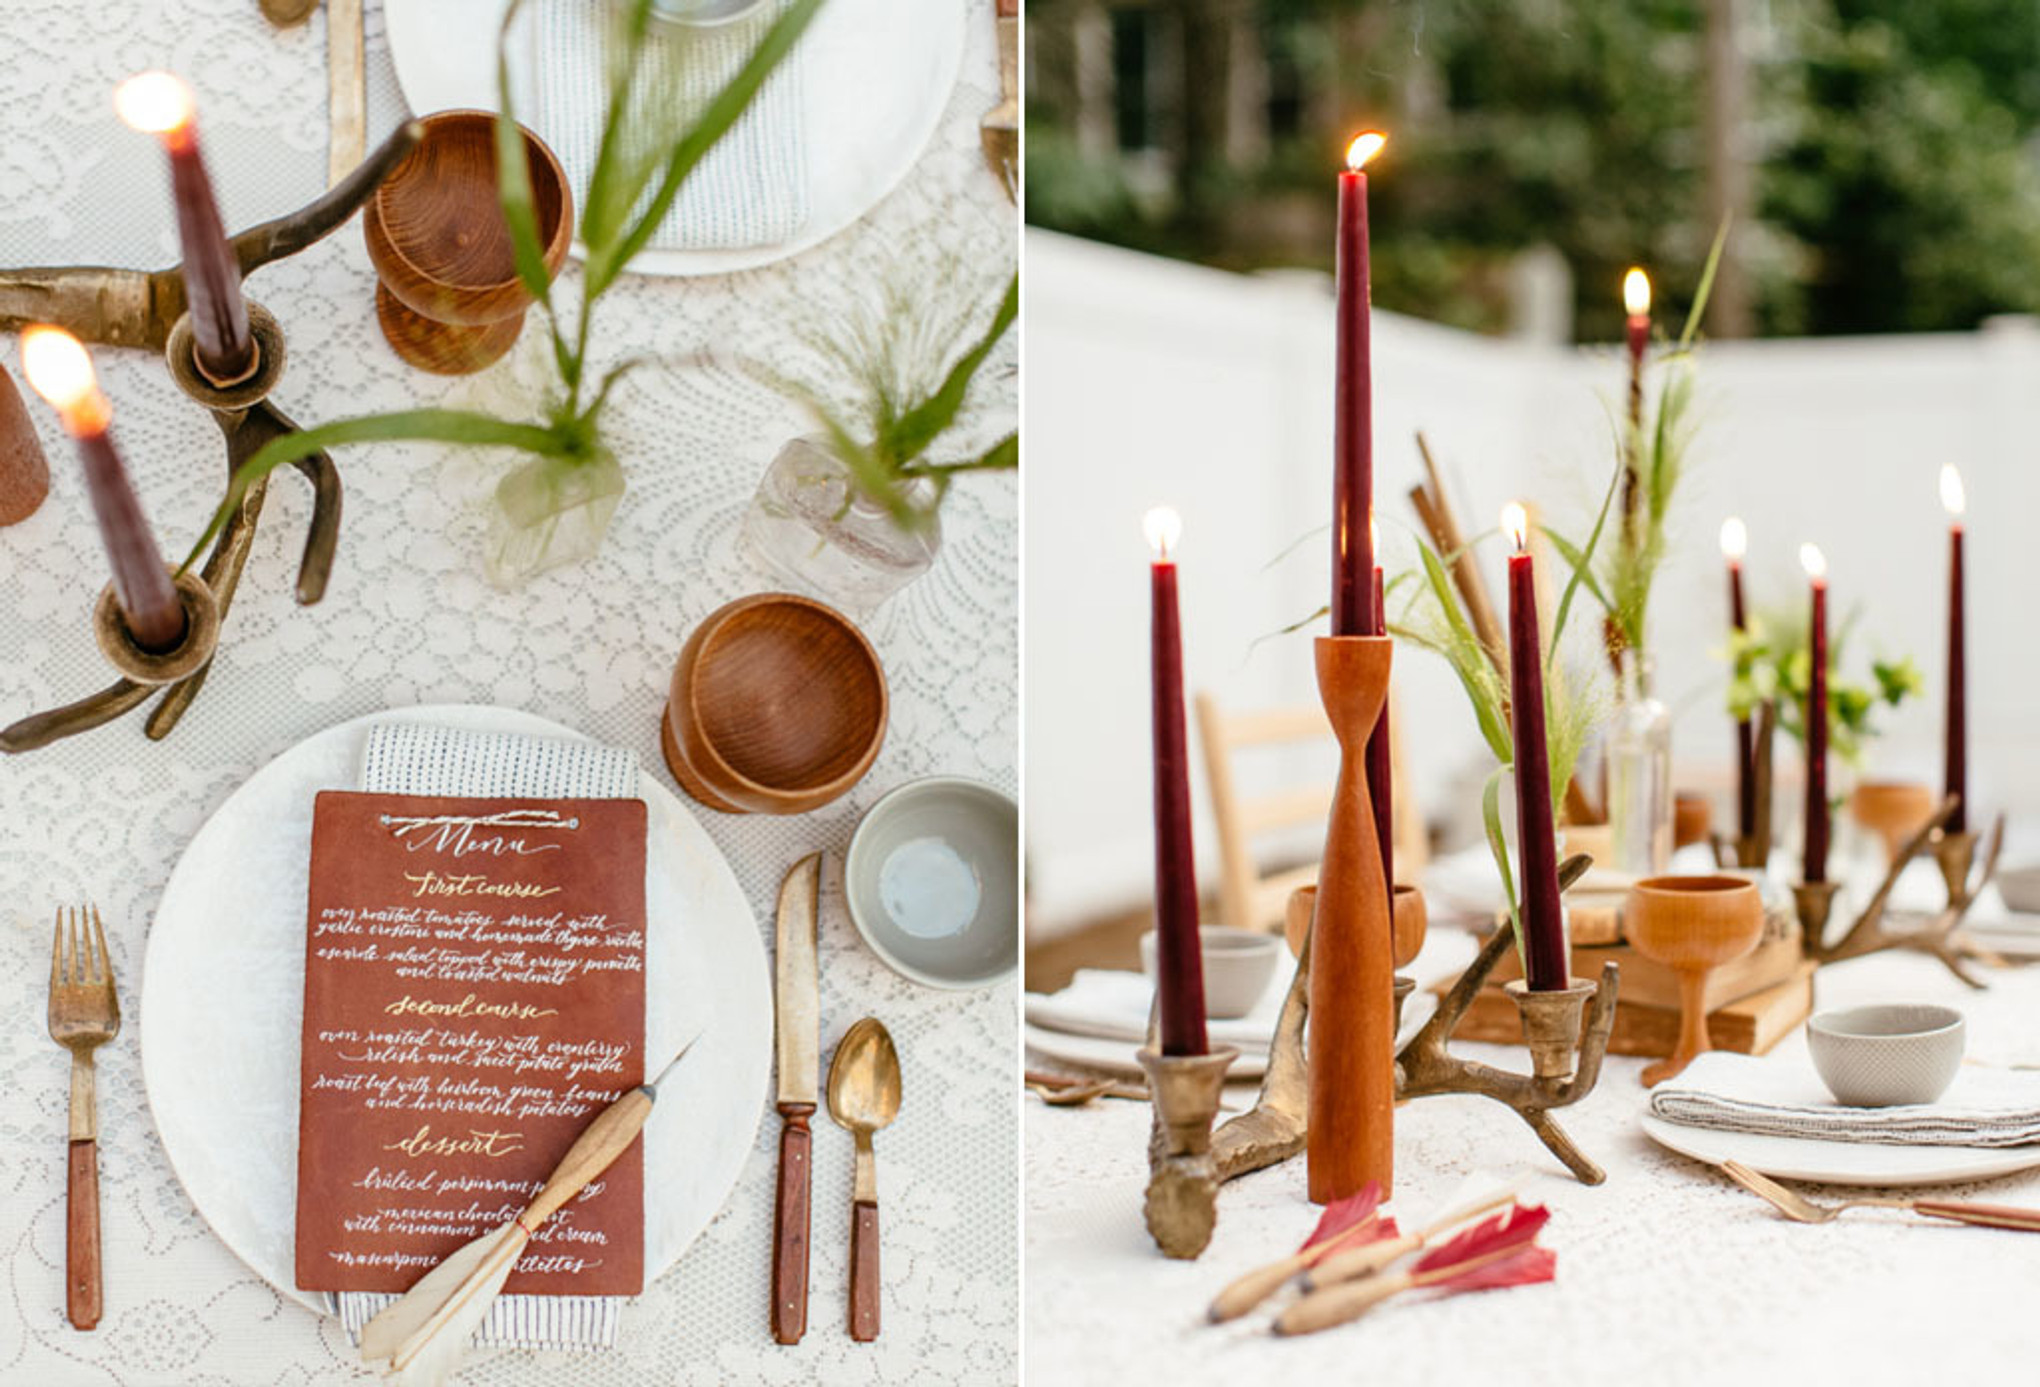 Wedding Color Palettes.How To Create The Perfect Wedding Color Palette Bridestory